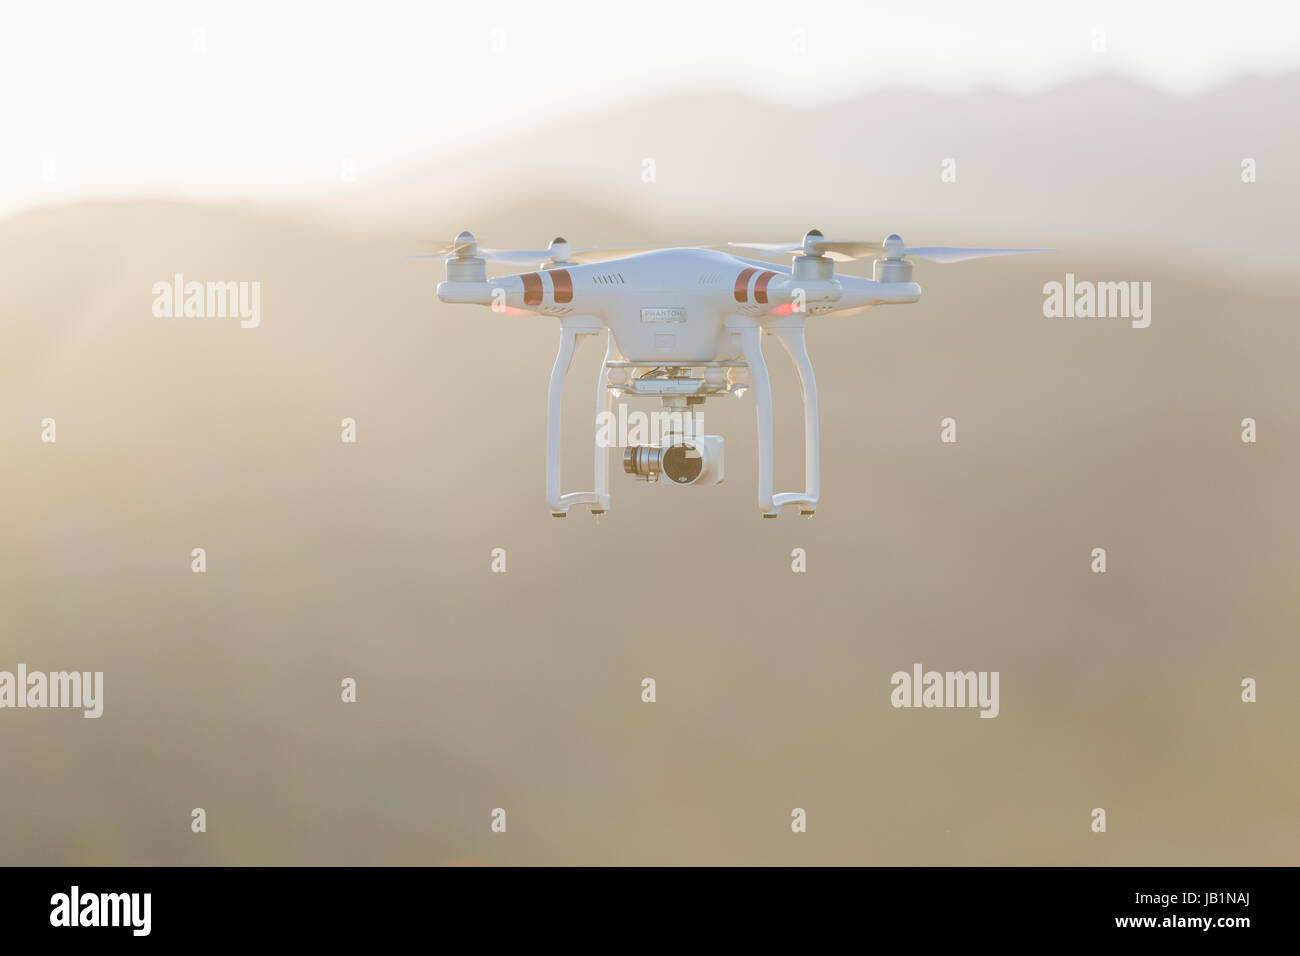 Stock Photo - Phantom Drone with camera attached - Stock Image